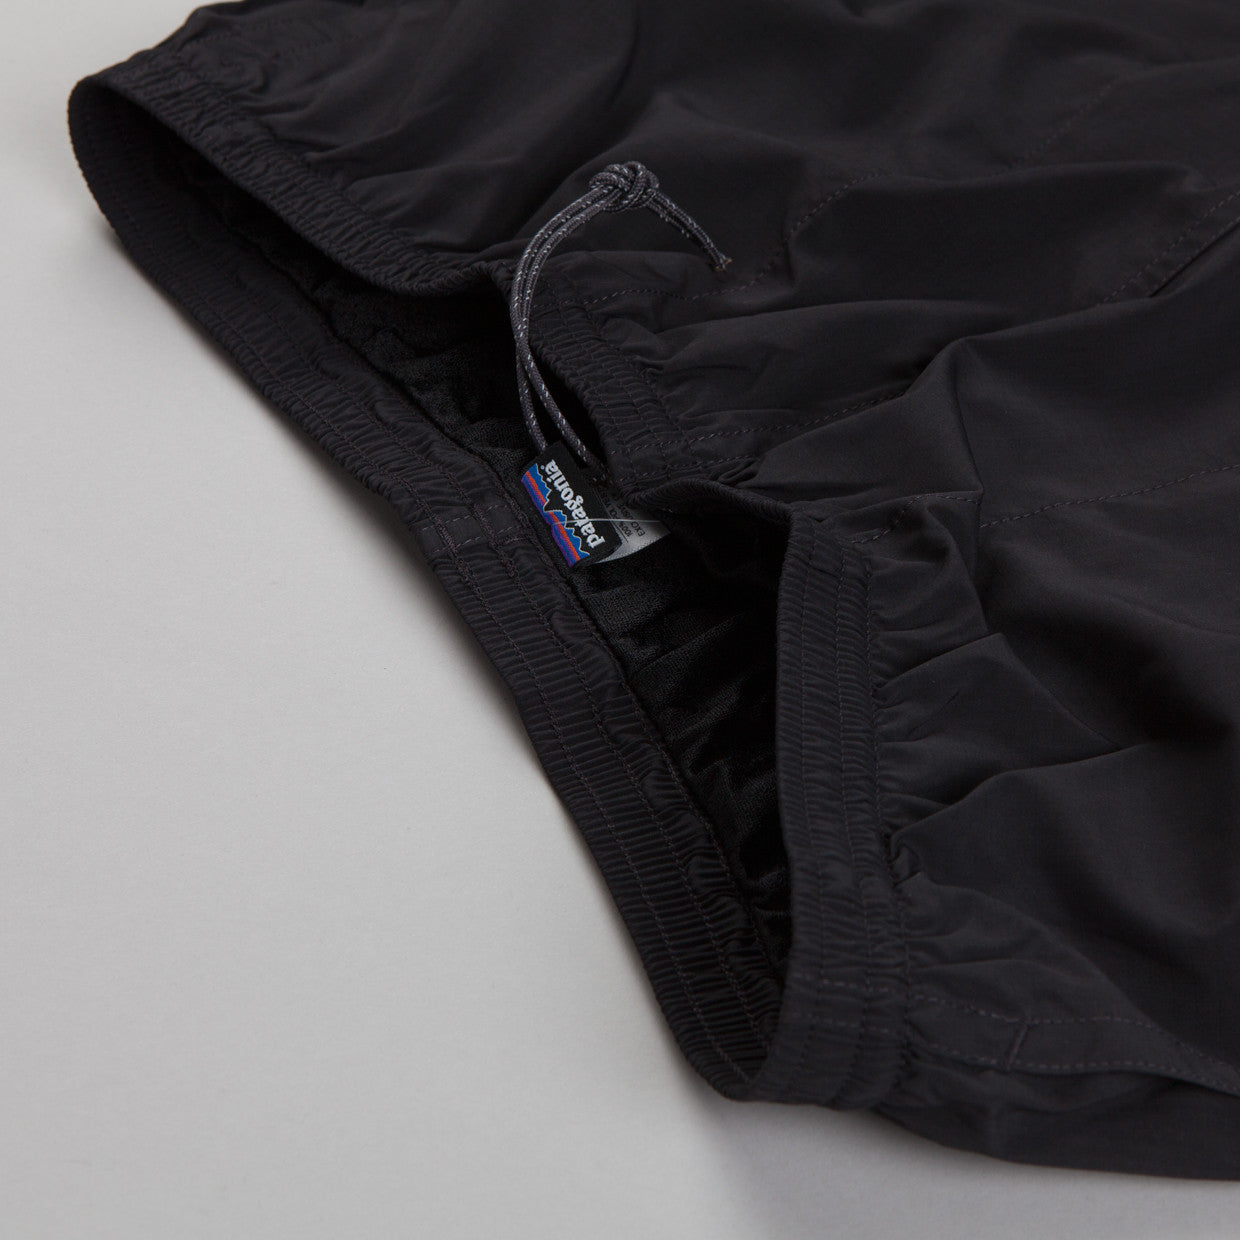 Patagonia Baggies™ Lights Shorts Black